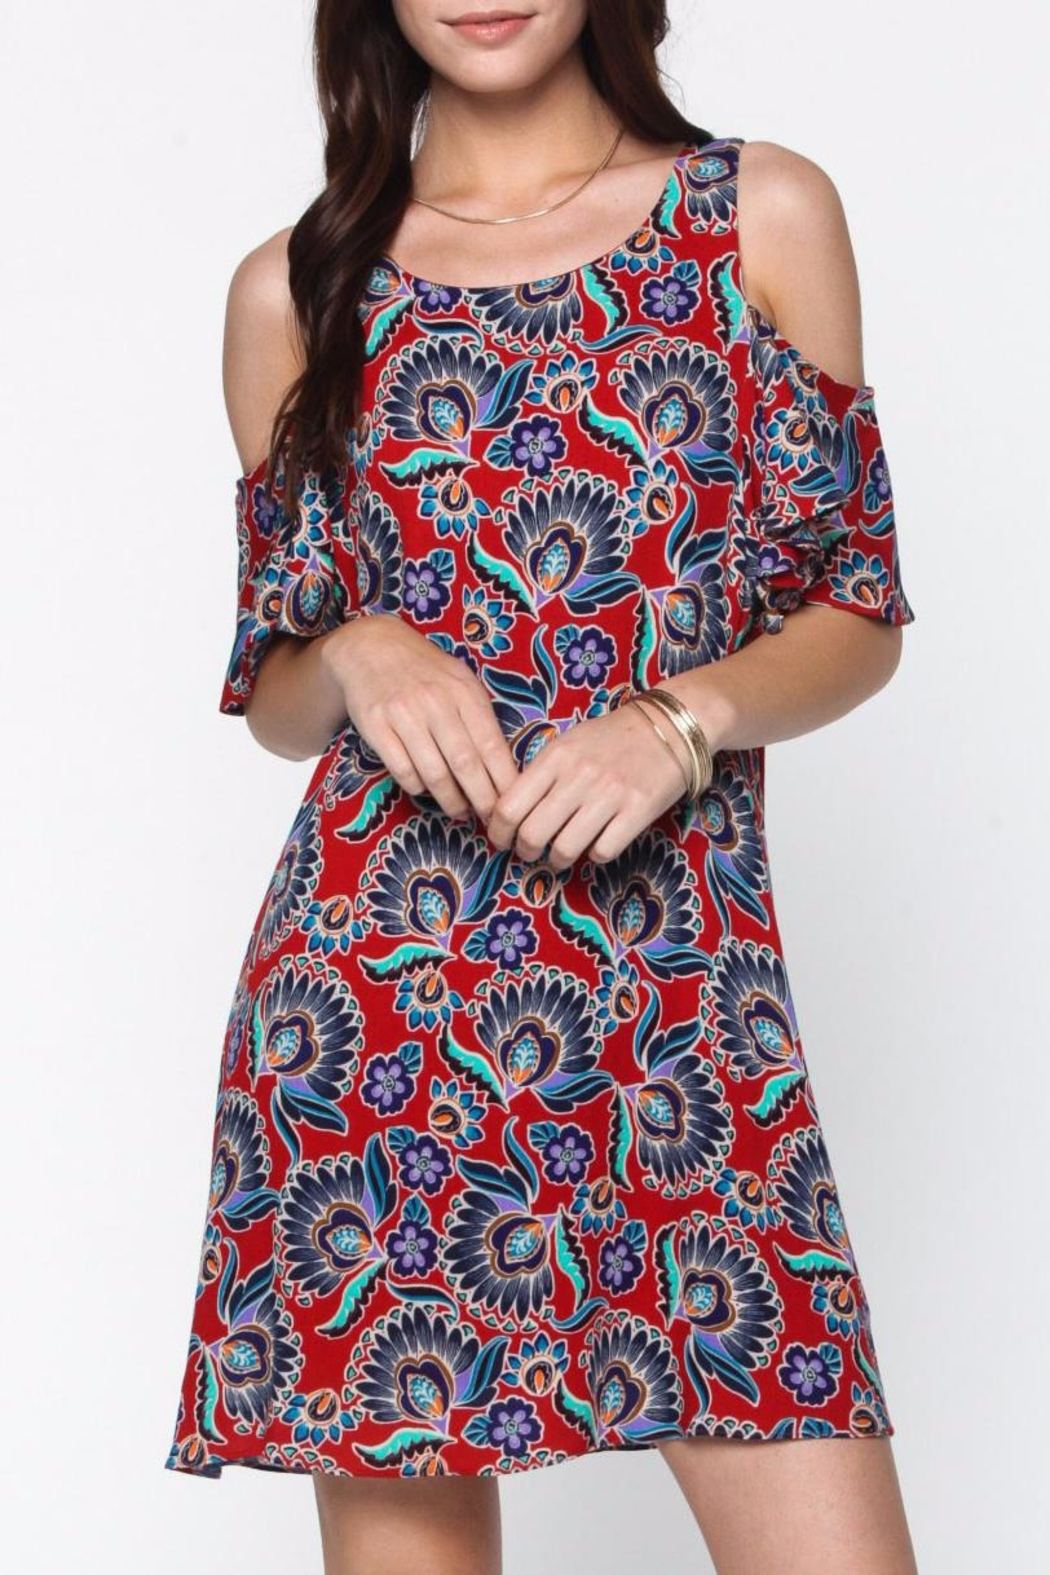 4e7cee4e1 Everly The Darling Dress from Orange County by Maple Boutique ...